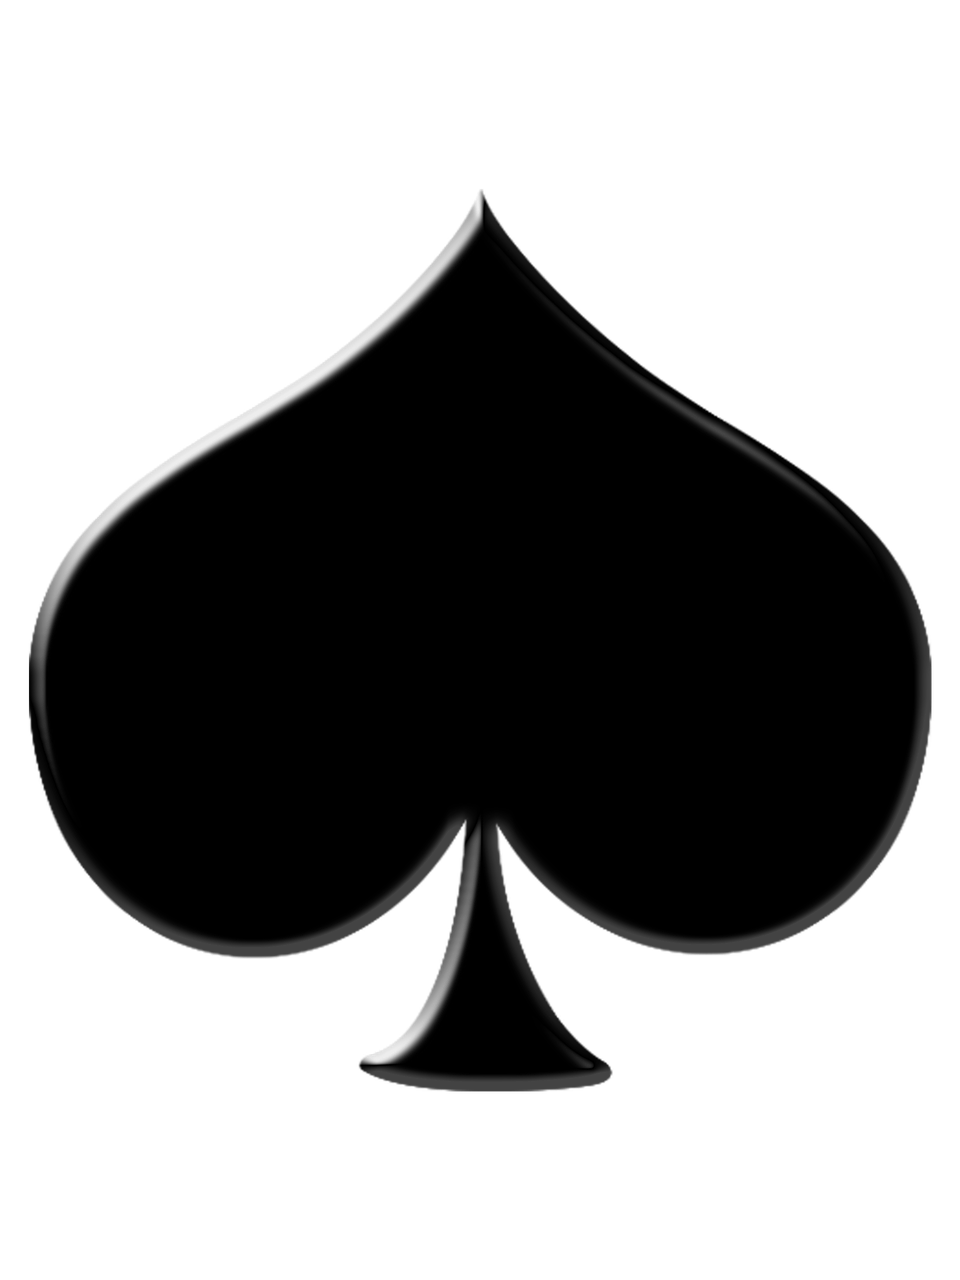 Pica Black As Poker Color Png Picpng